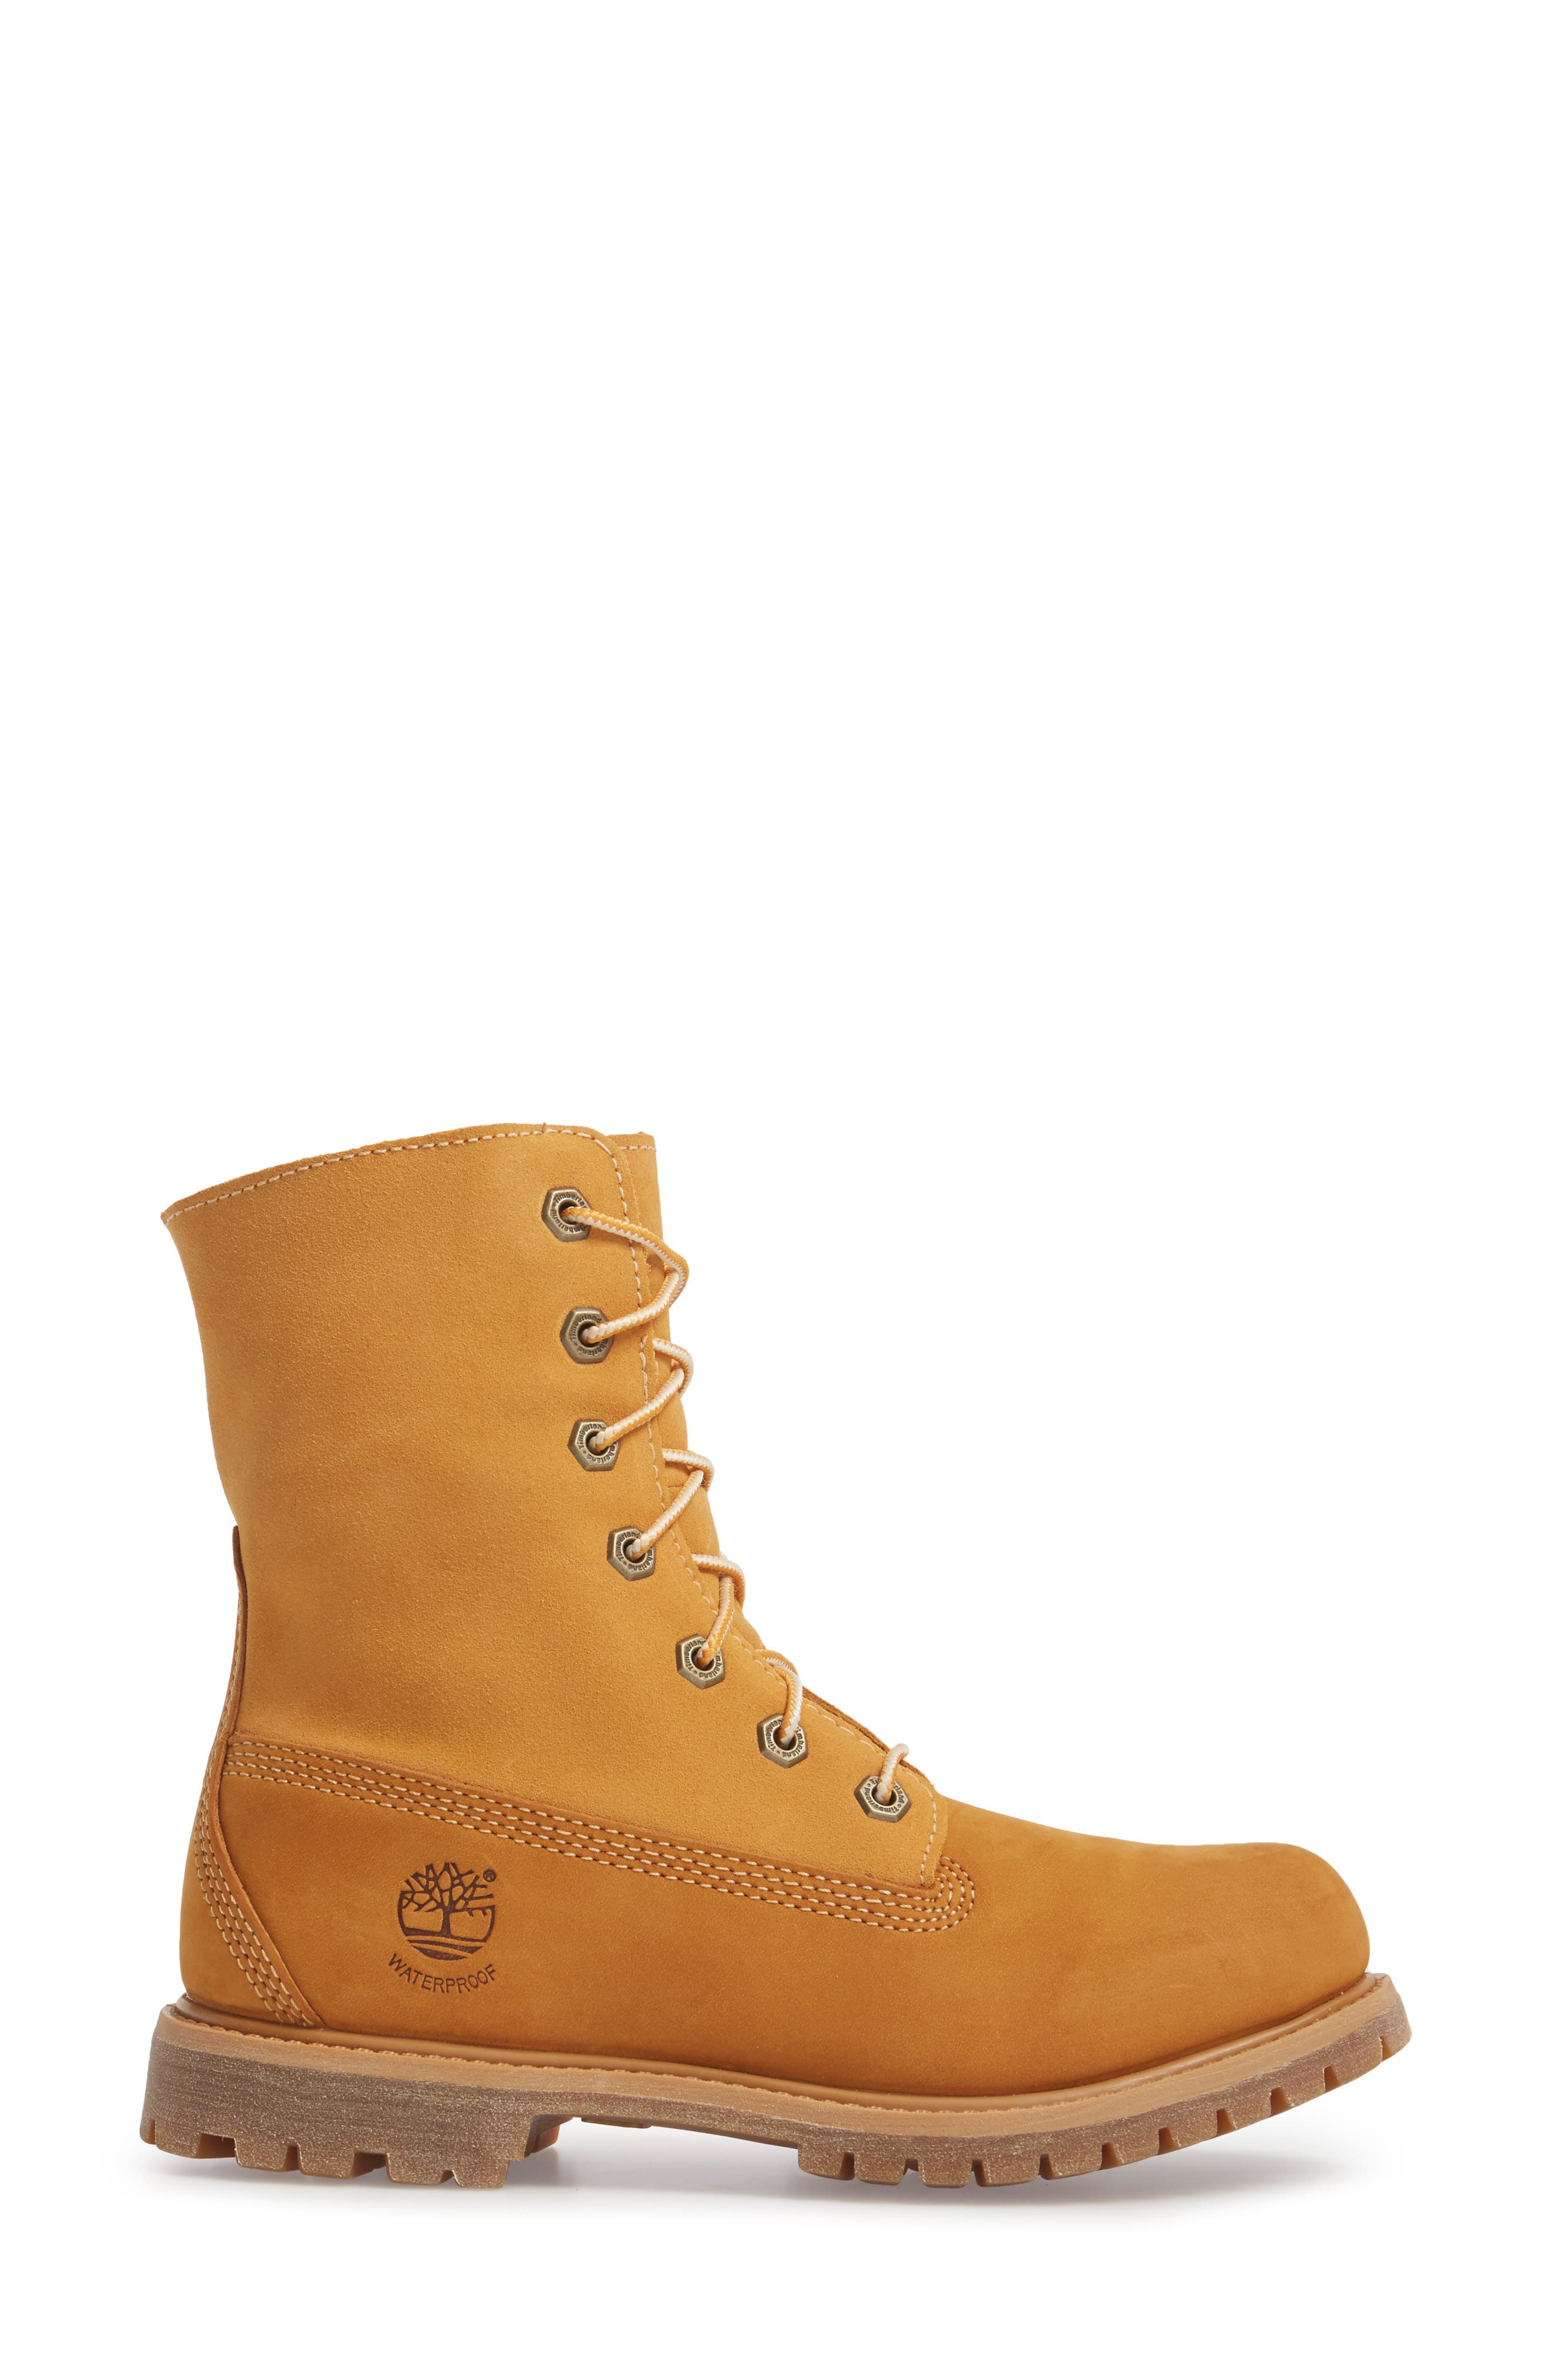 Authentic Waterproof Teddy Fleece Lined Winter Boot,                             Alternate thumbnail 3, color,                             Wheat